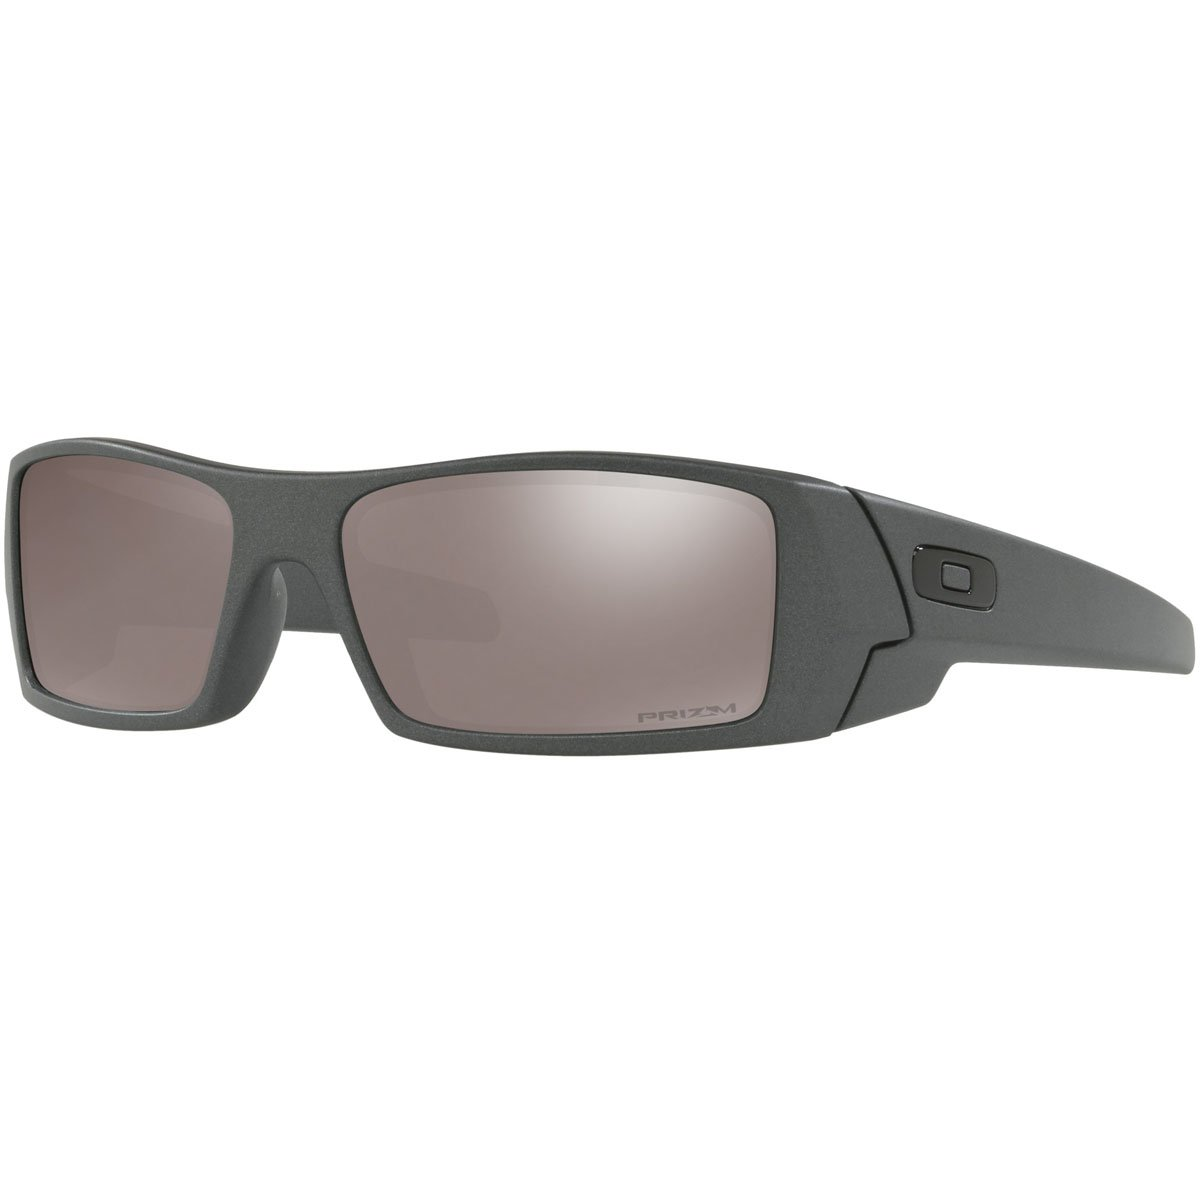 Oakley Men's OO9014 Gascan Rectangular Sunglasses, Steel/Prizm Black Polarized, 60 mm by Oakley